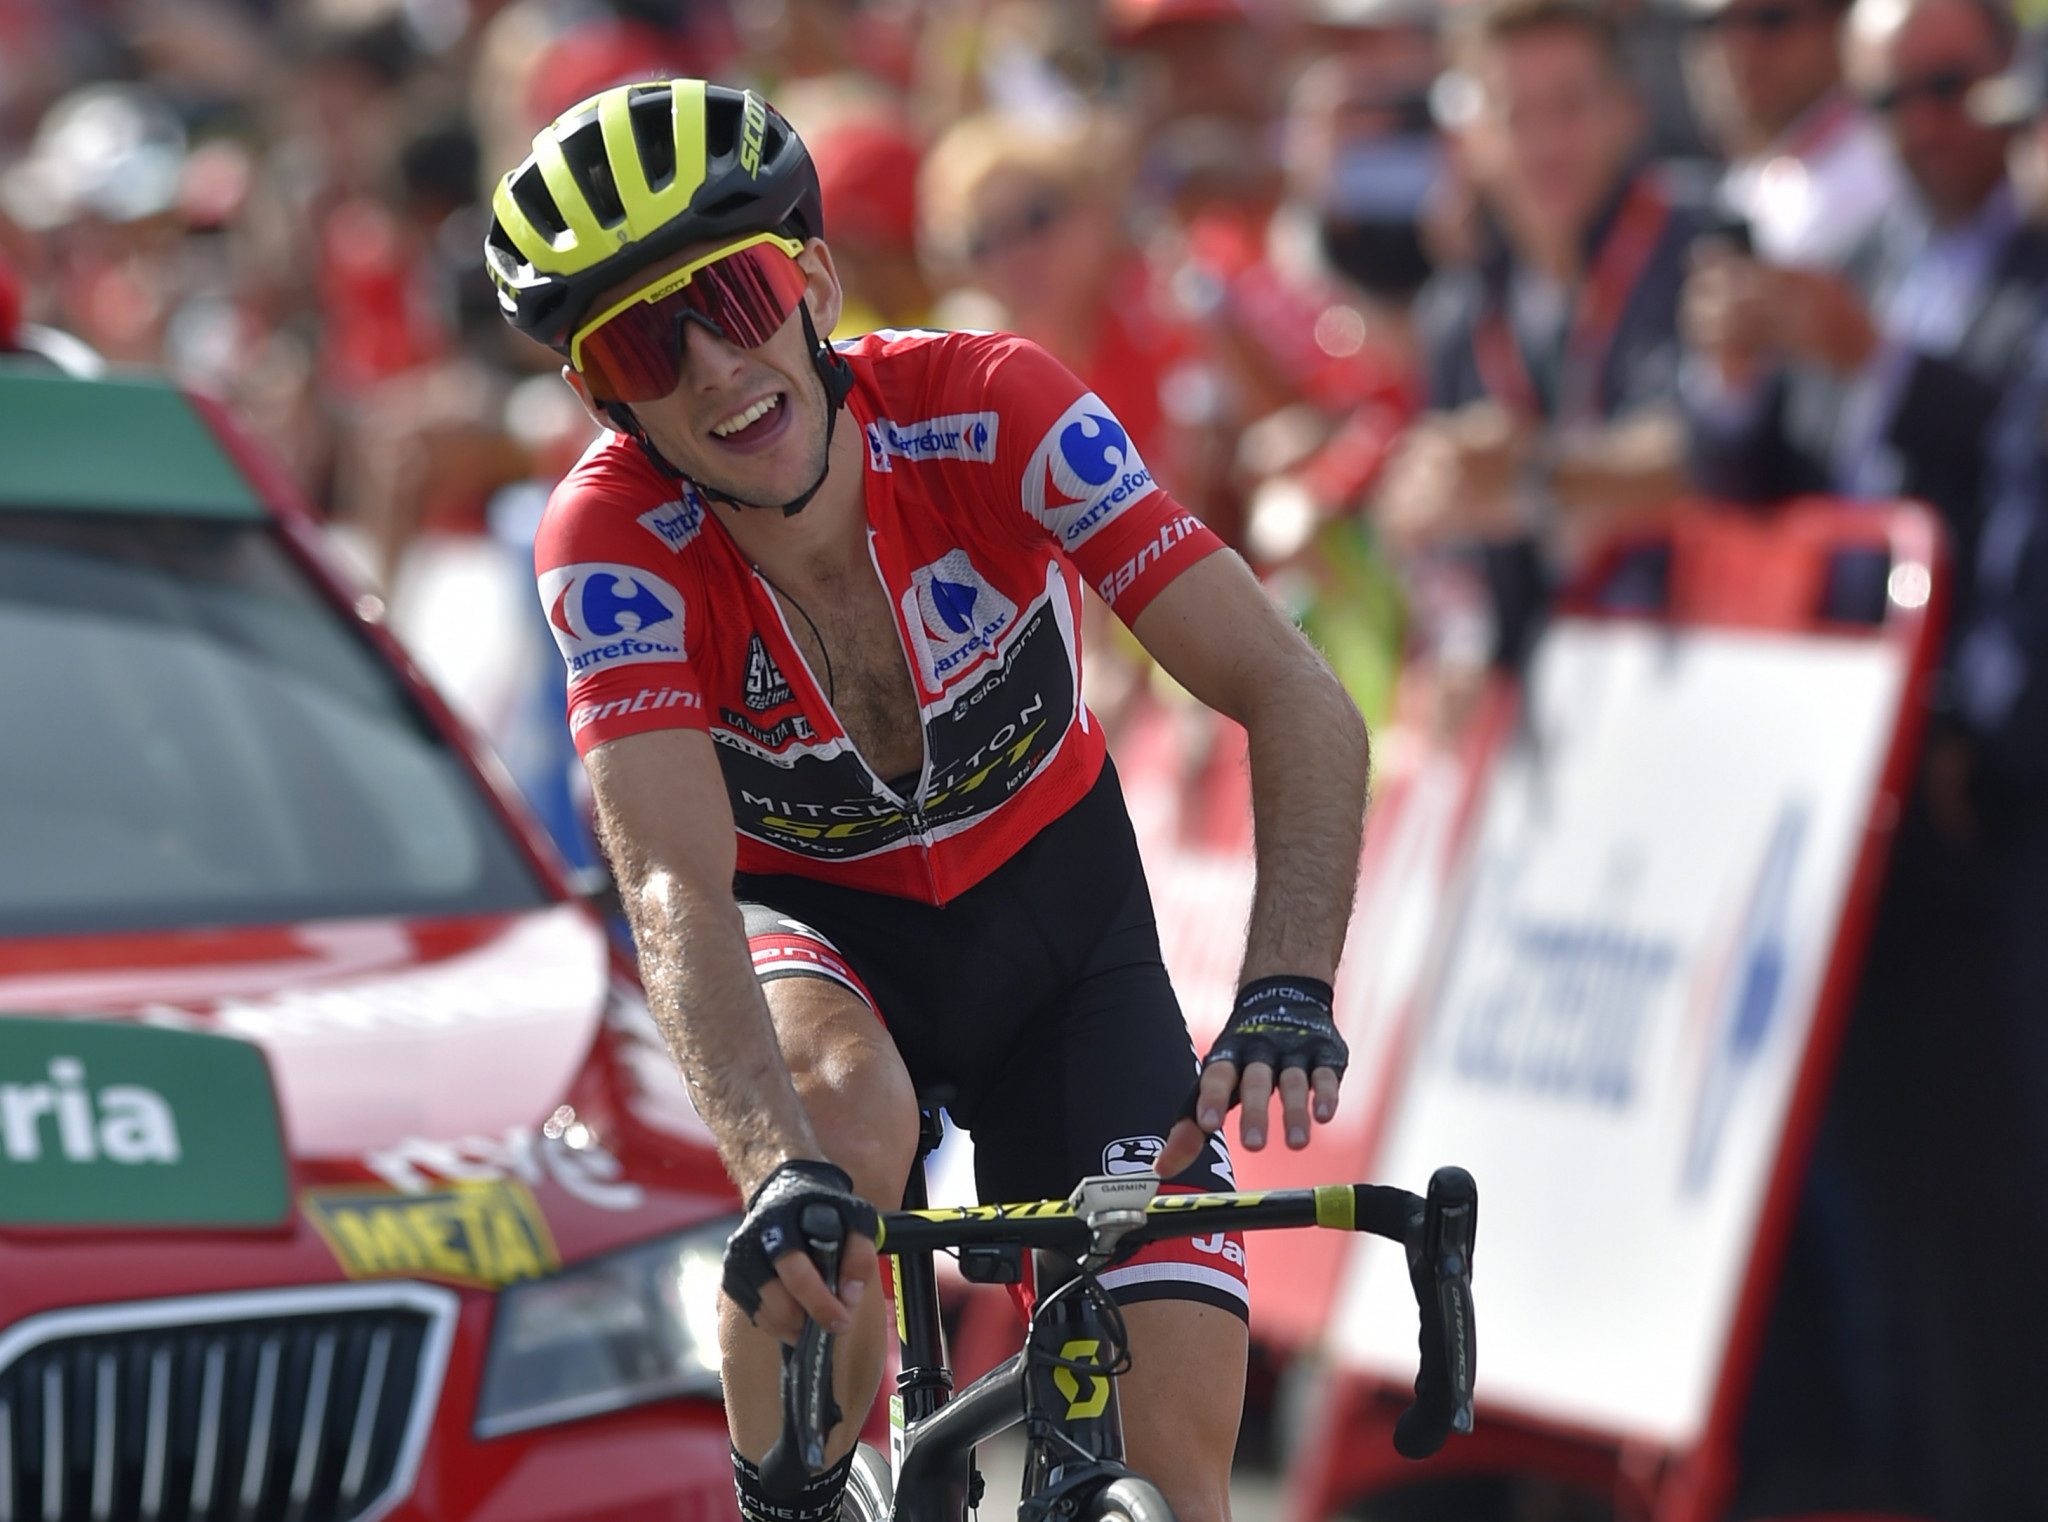 Simon Yates of Britain strengthened his overall lead at the Vuelta a España ©Getty Images